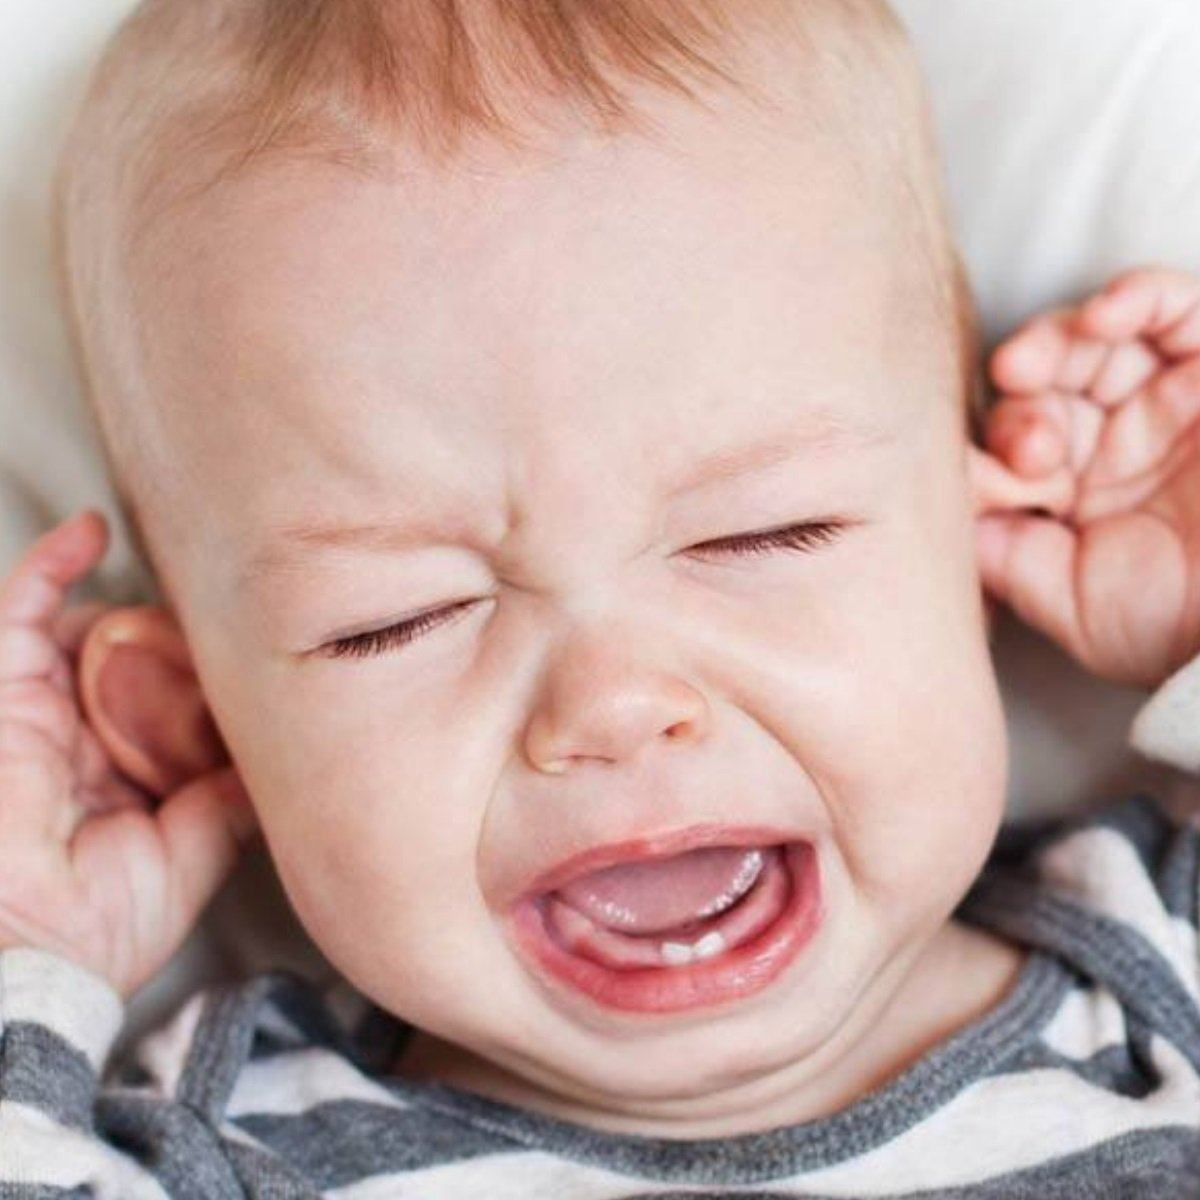 Is Overstimulation Bad for Babies?